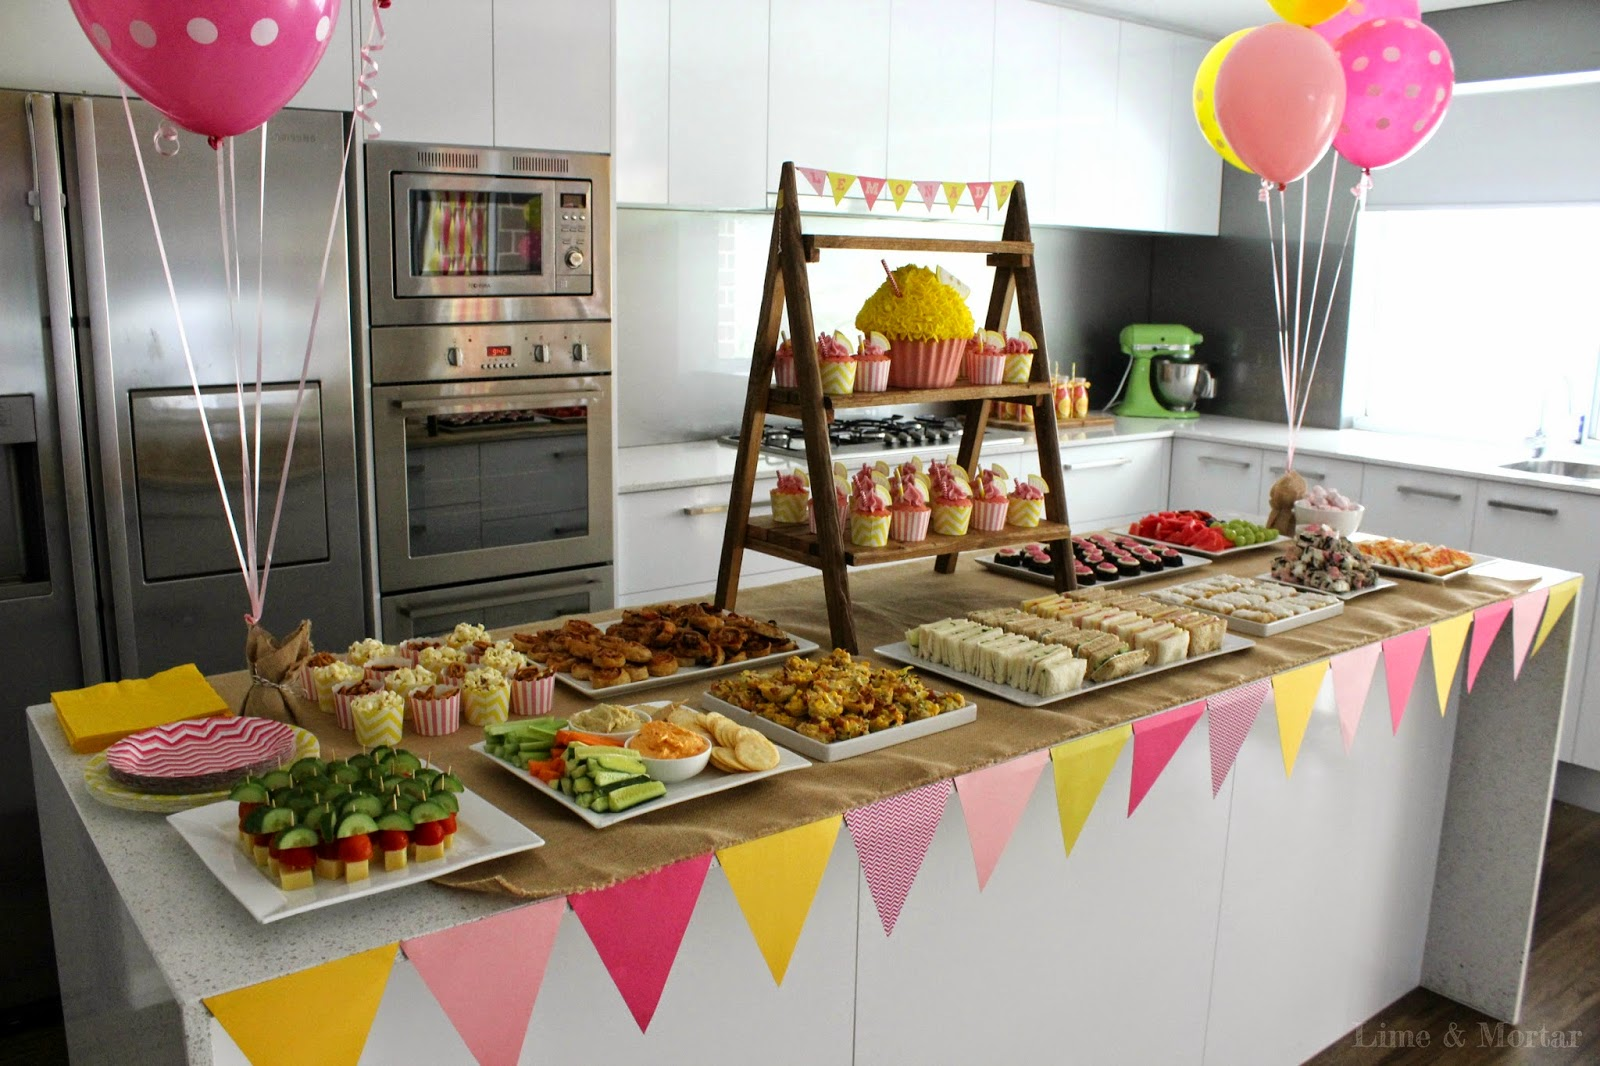 Lime mortar kids parties lemonade stand party - Kids party food table ideas ...